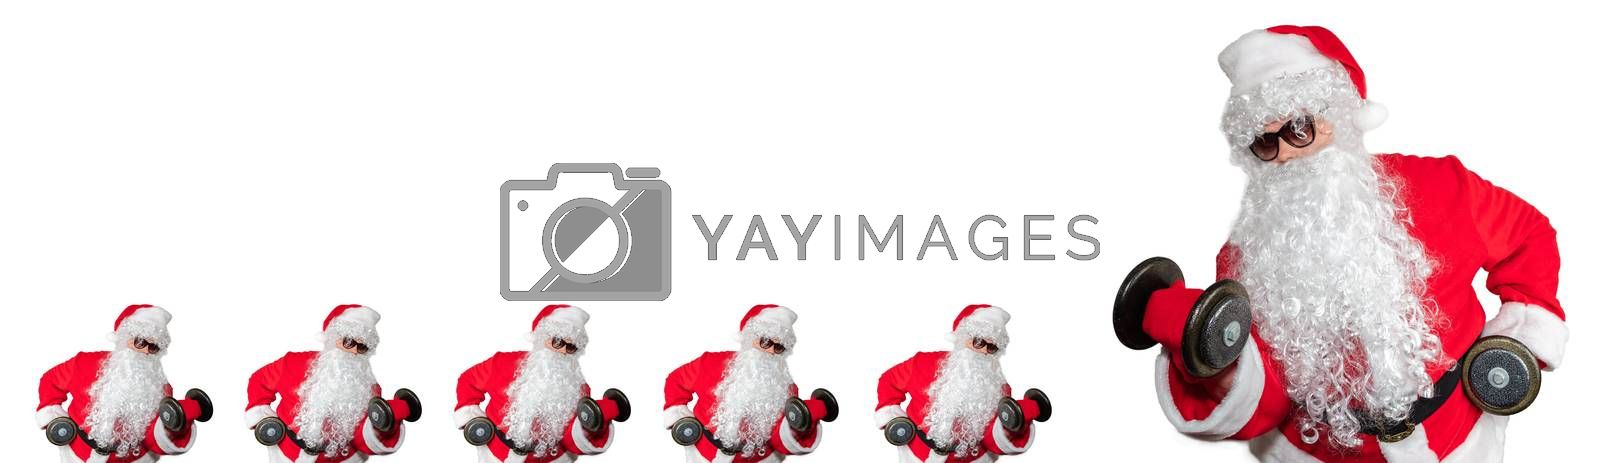 Santa Clauses working out, lifting dumbbells and doing bicep curls. Five smalls santas facing a big santa. Isolated on white background. Sport, fitness, bodybuilding conept. Banner size, copy space.